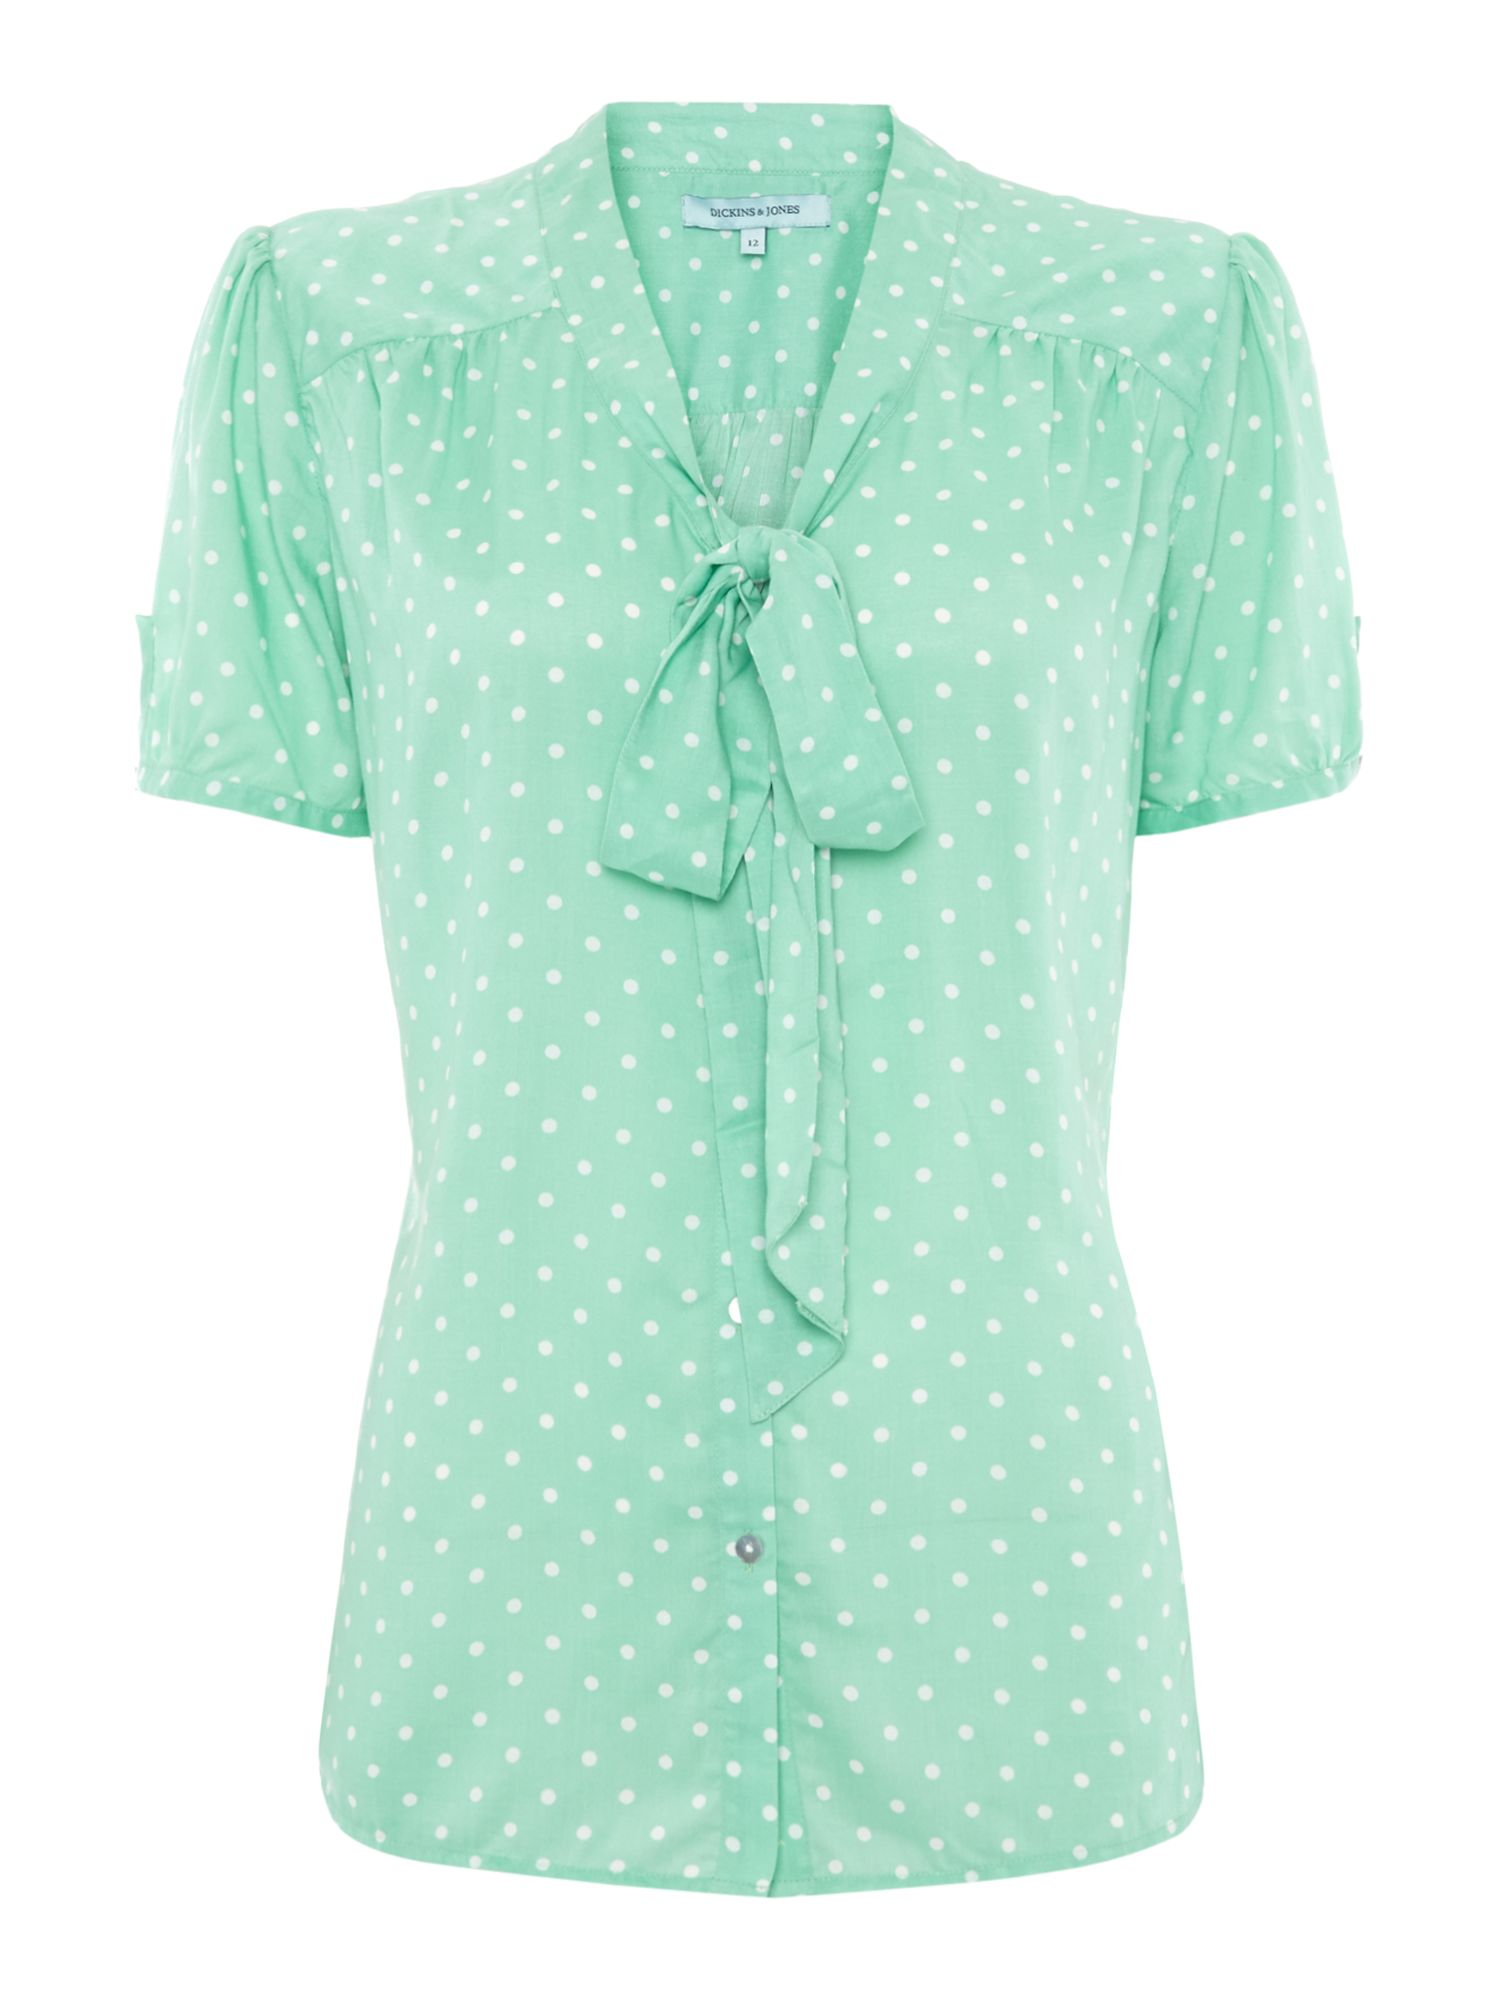 Spot top blouse with bow